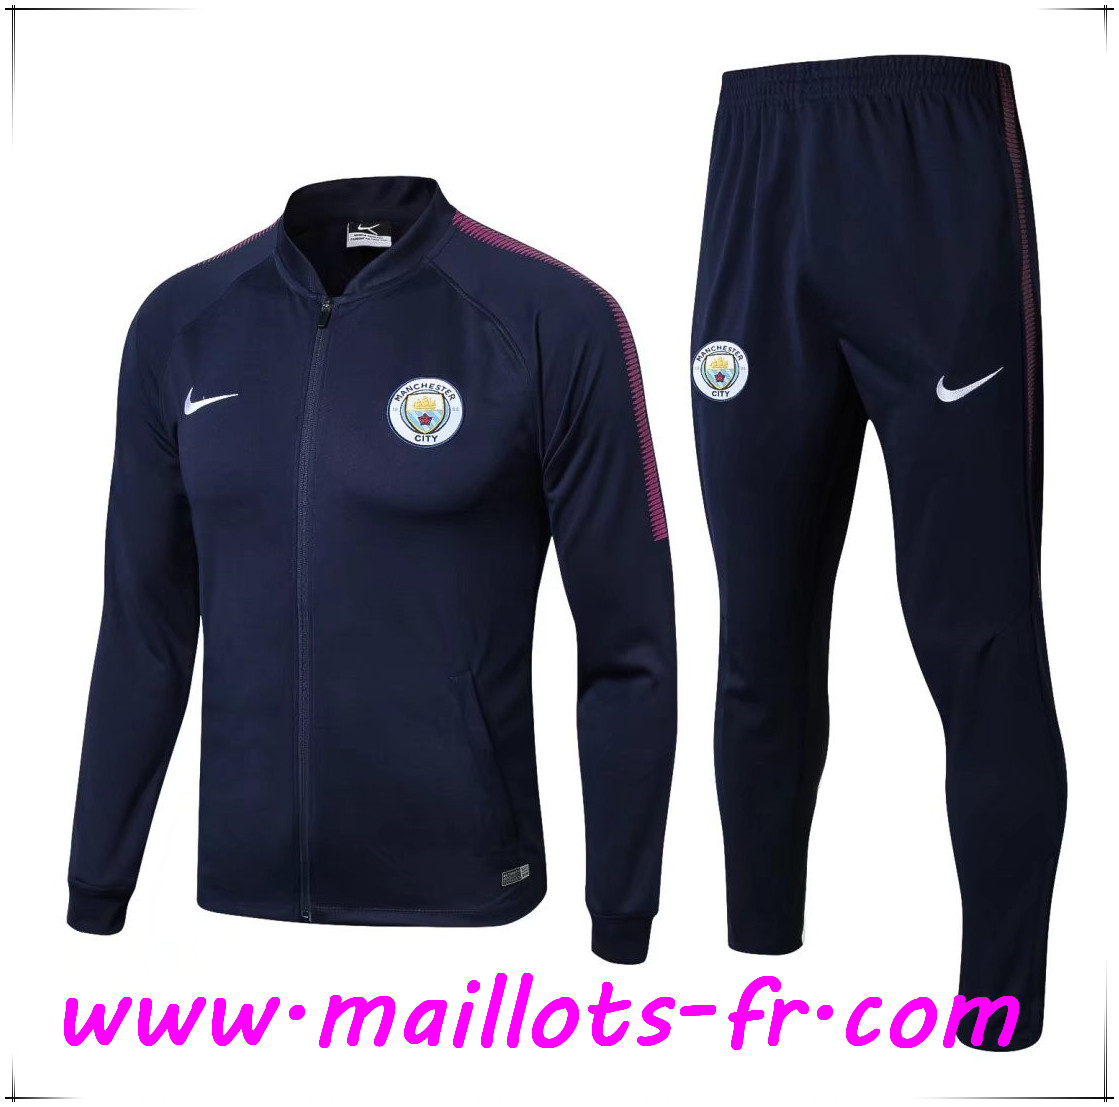 Maillots-fr Thailande Survetement de Foot - Veste Manchester City Bleu Marine Ensemble 2017/2018